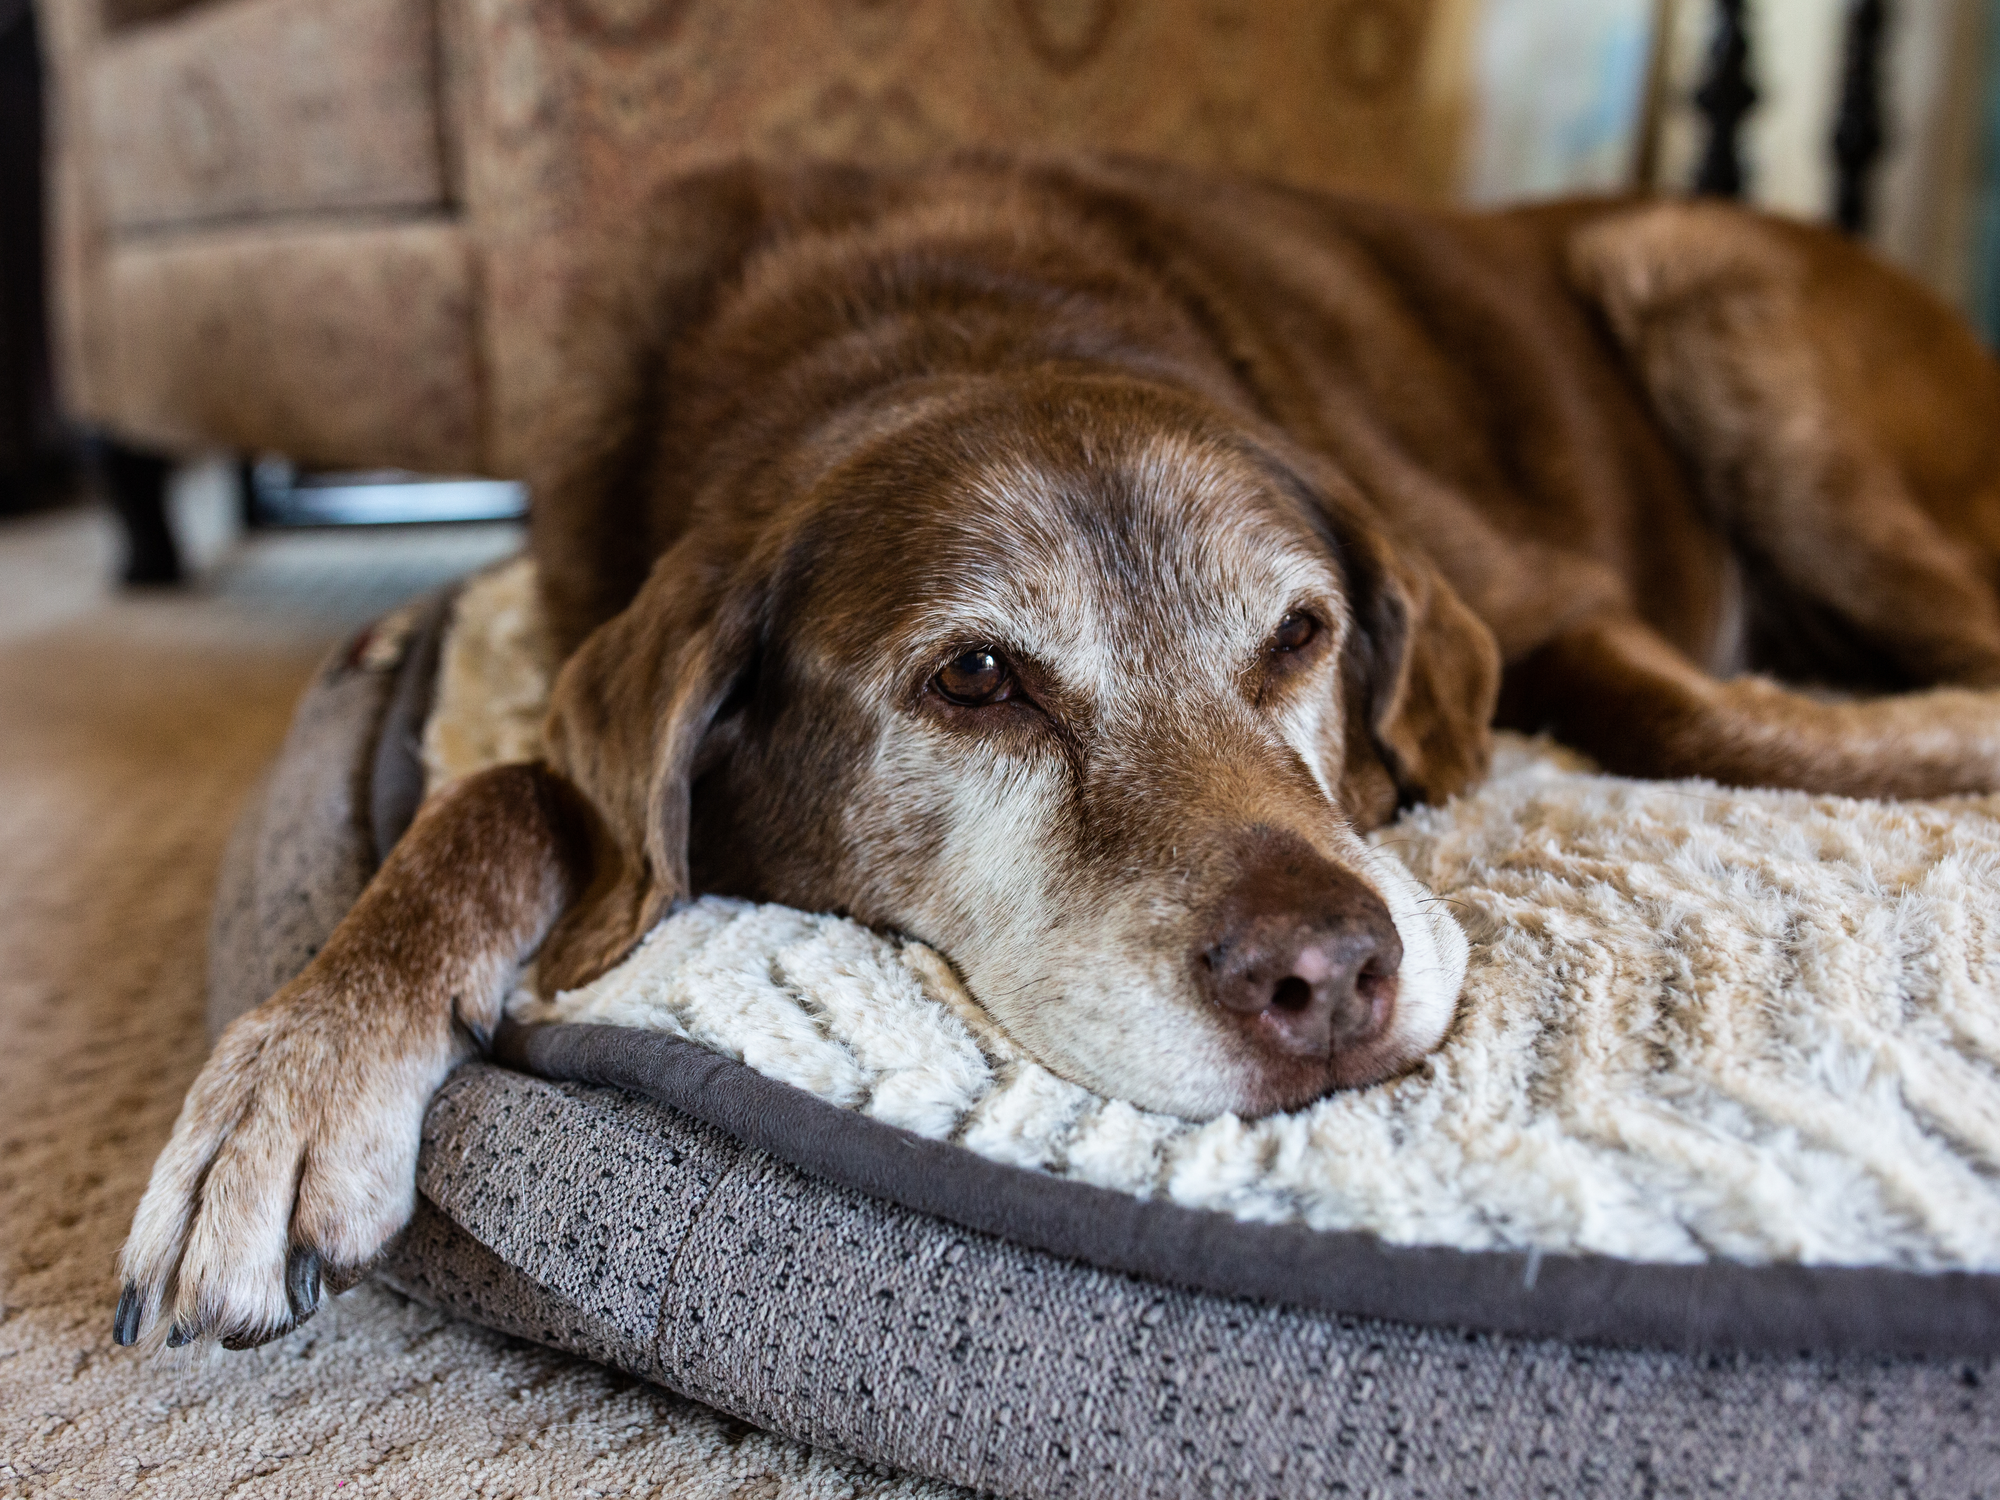 Pet Euthanasia: When Is It Time?